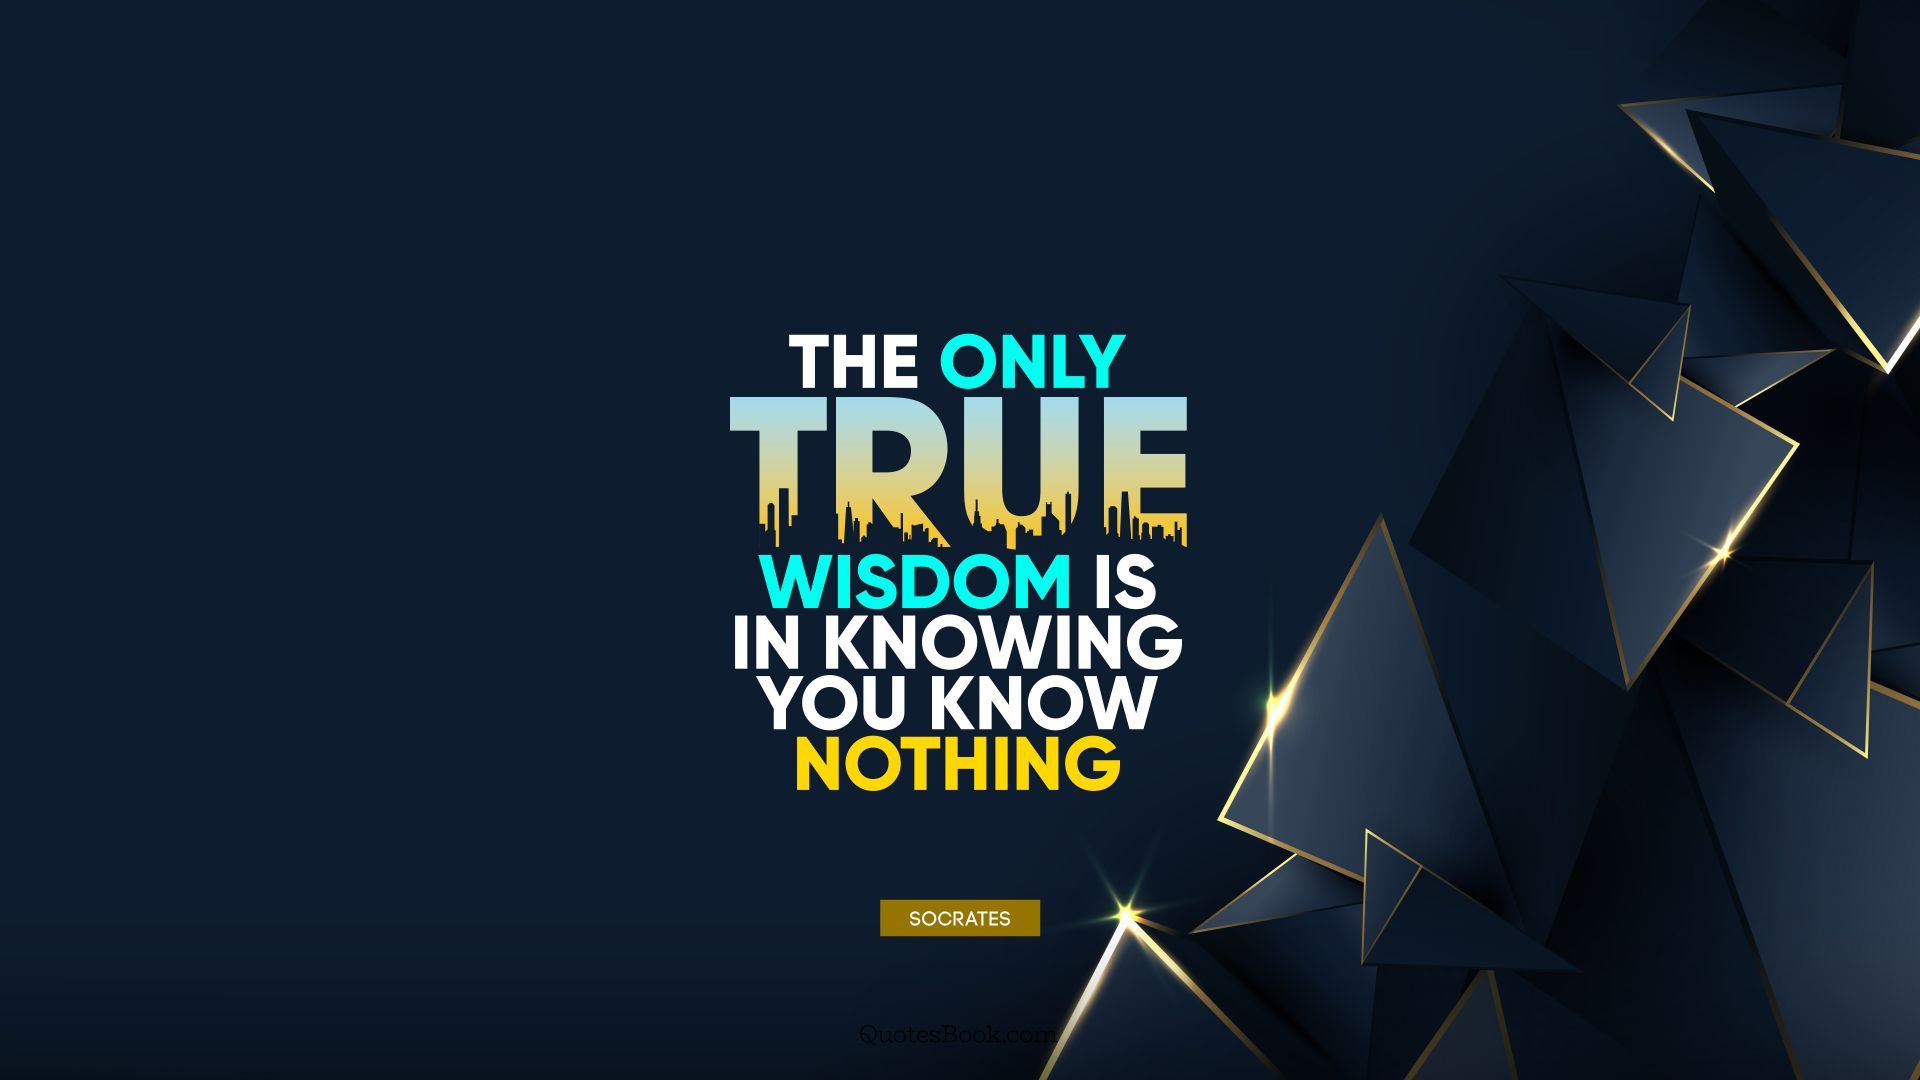 The only true wisdom is in knowing you know nothing. - Quote by Socrates